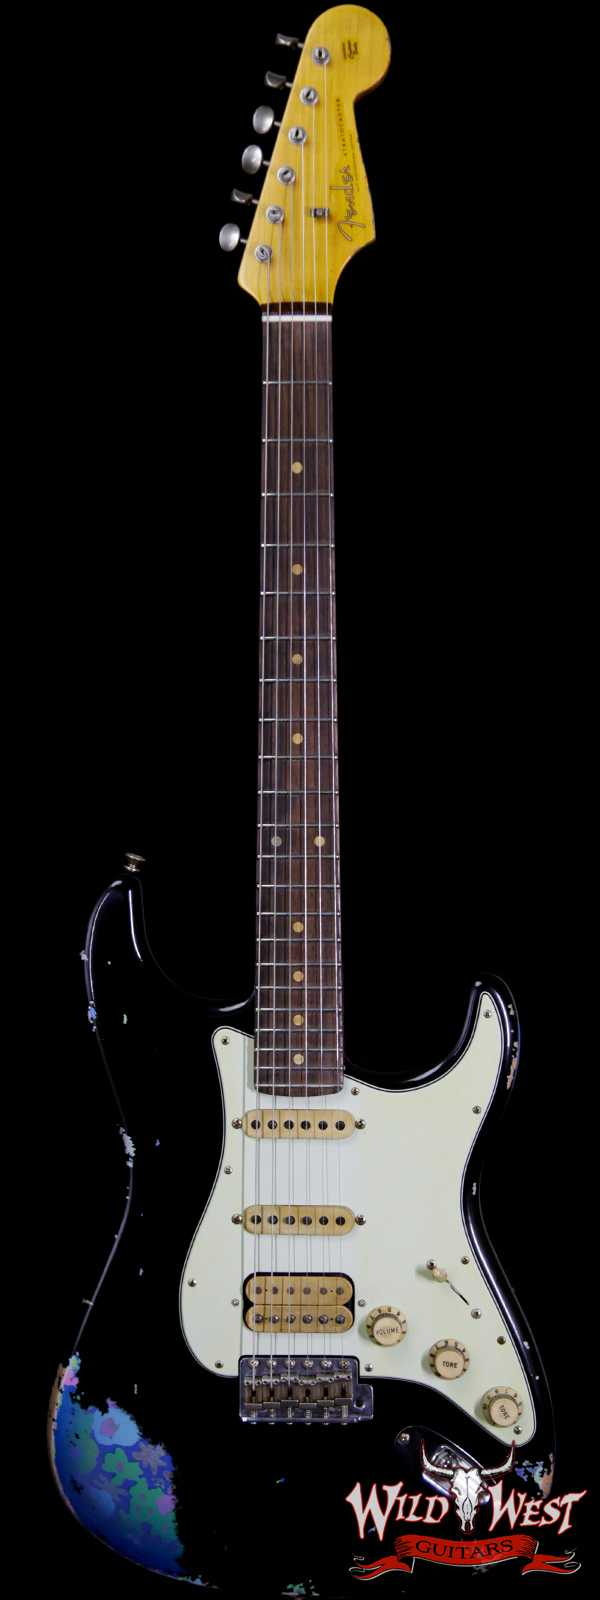 Fender Custom Shop Black Lightning 2.0 Stratocaster Heavy Relic HSS 22 Frets Rosewood Board Blue Flower